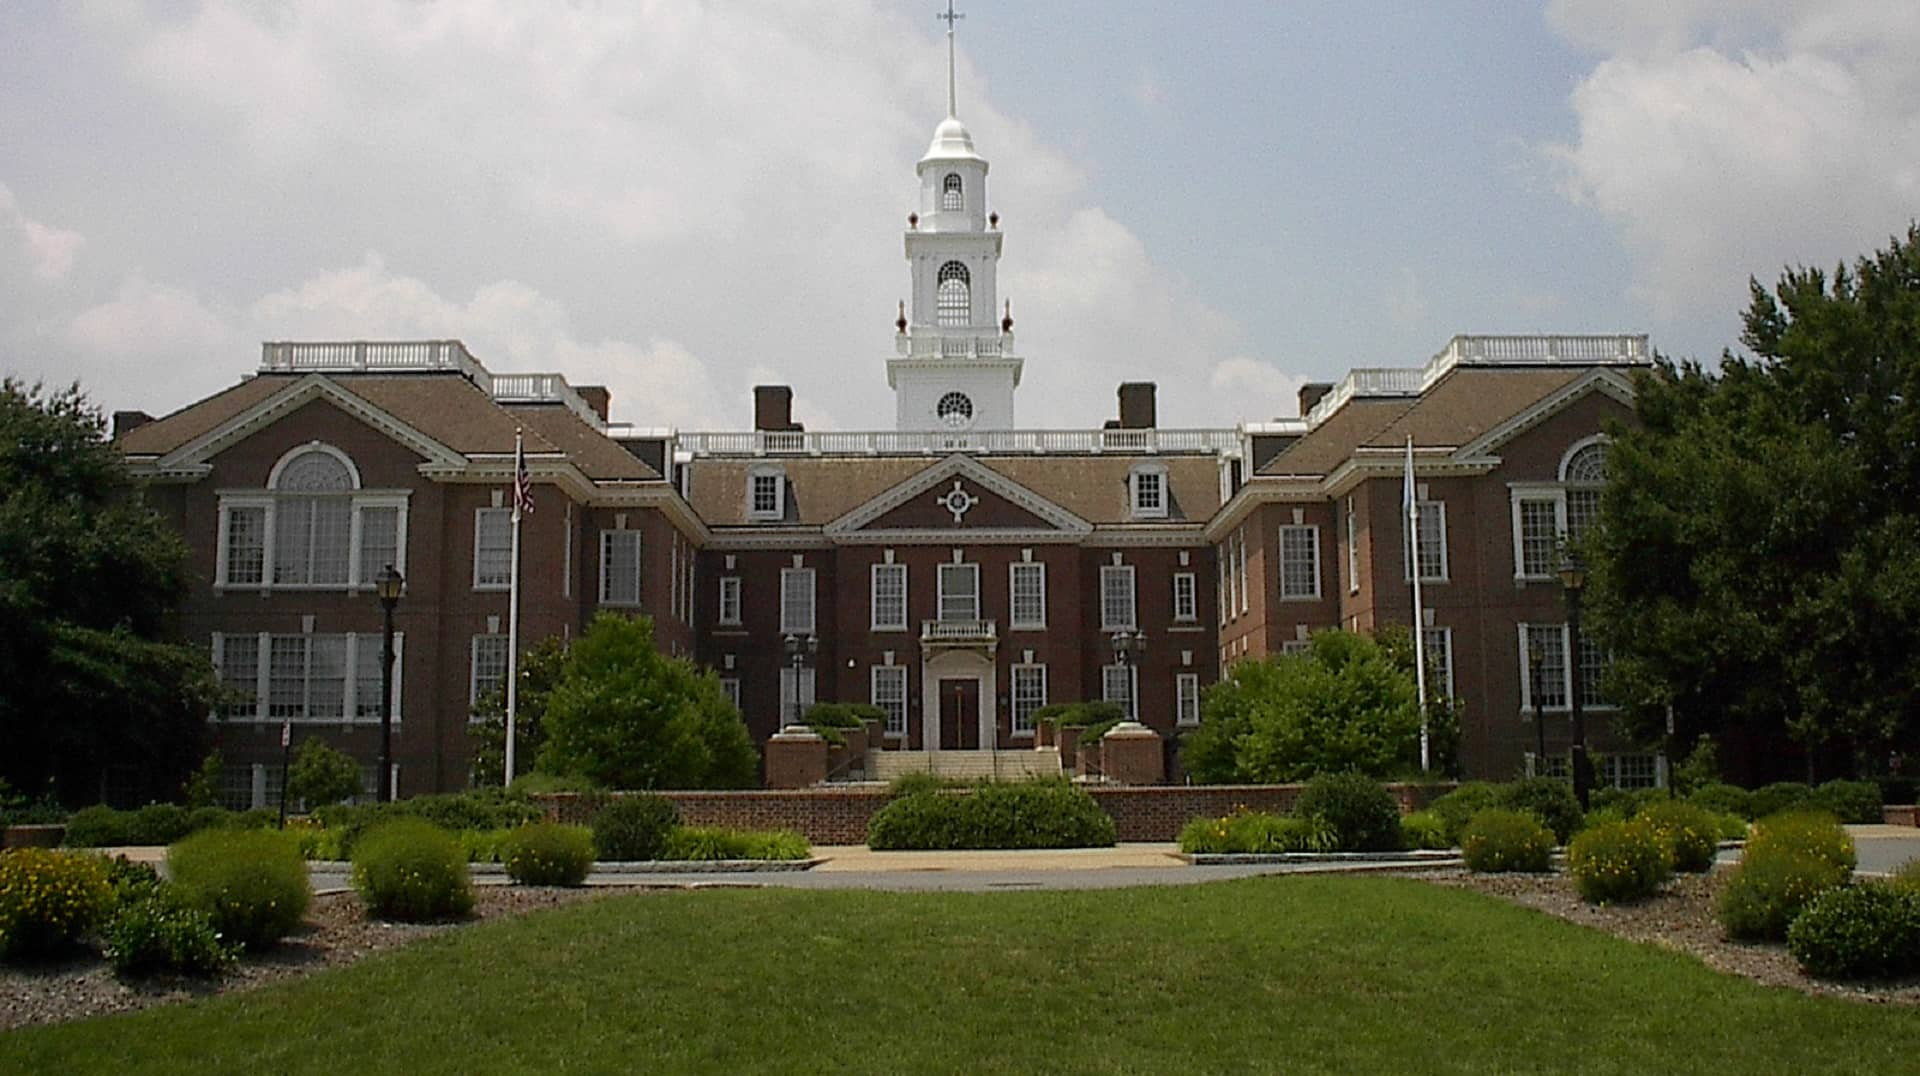 Bill opening up Delaware police internal records clears committee